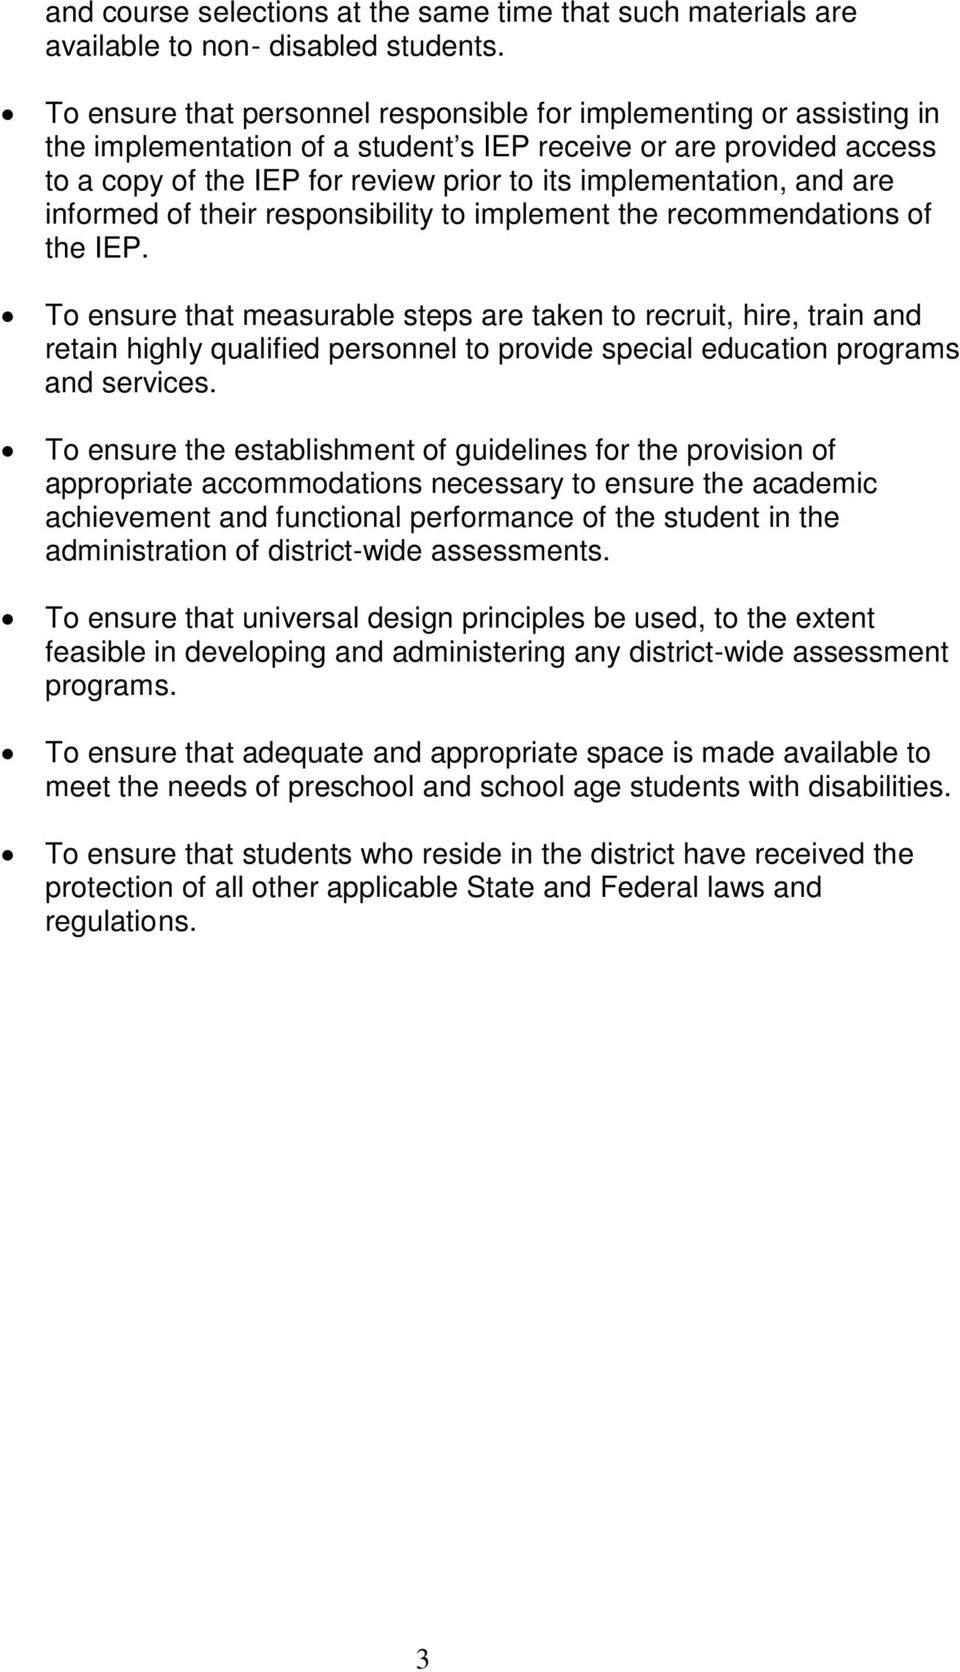 and are informed of their responsibility to implement the recommendations of the IEP.